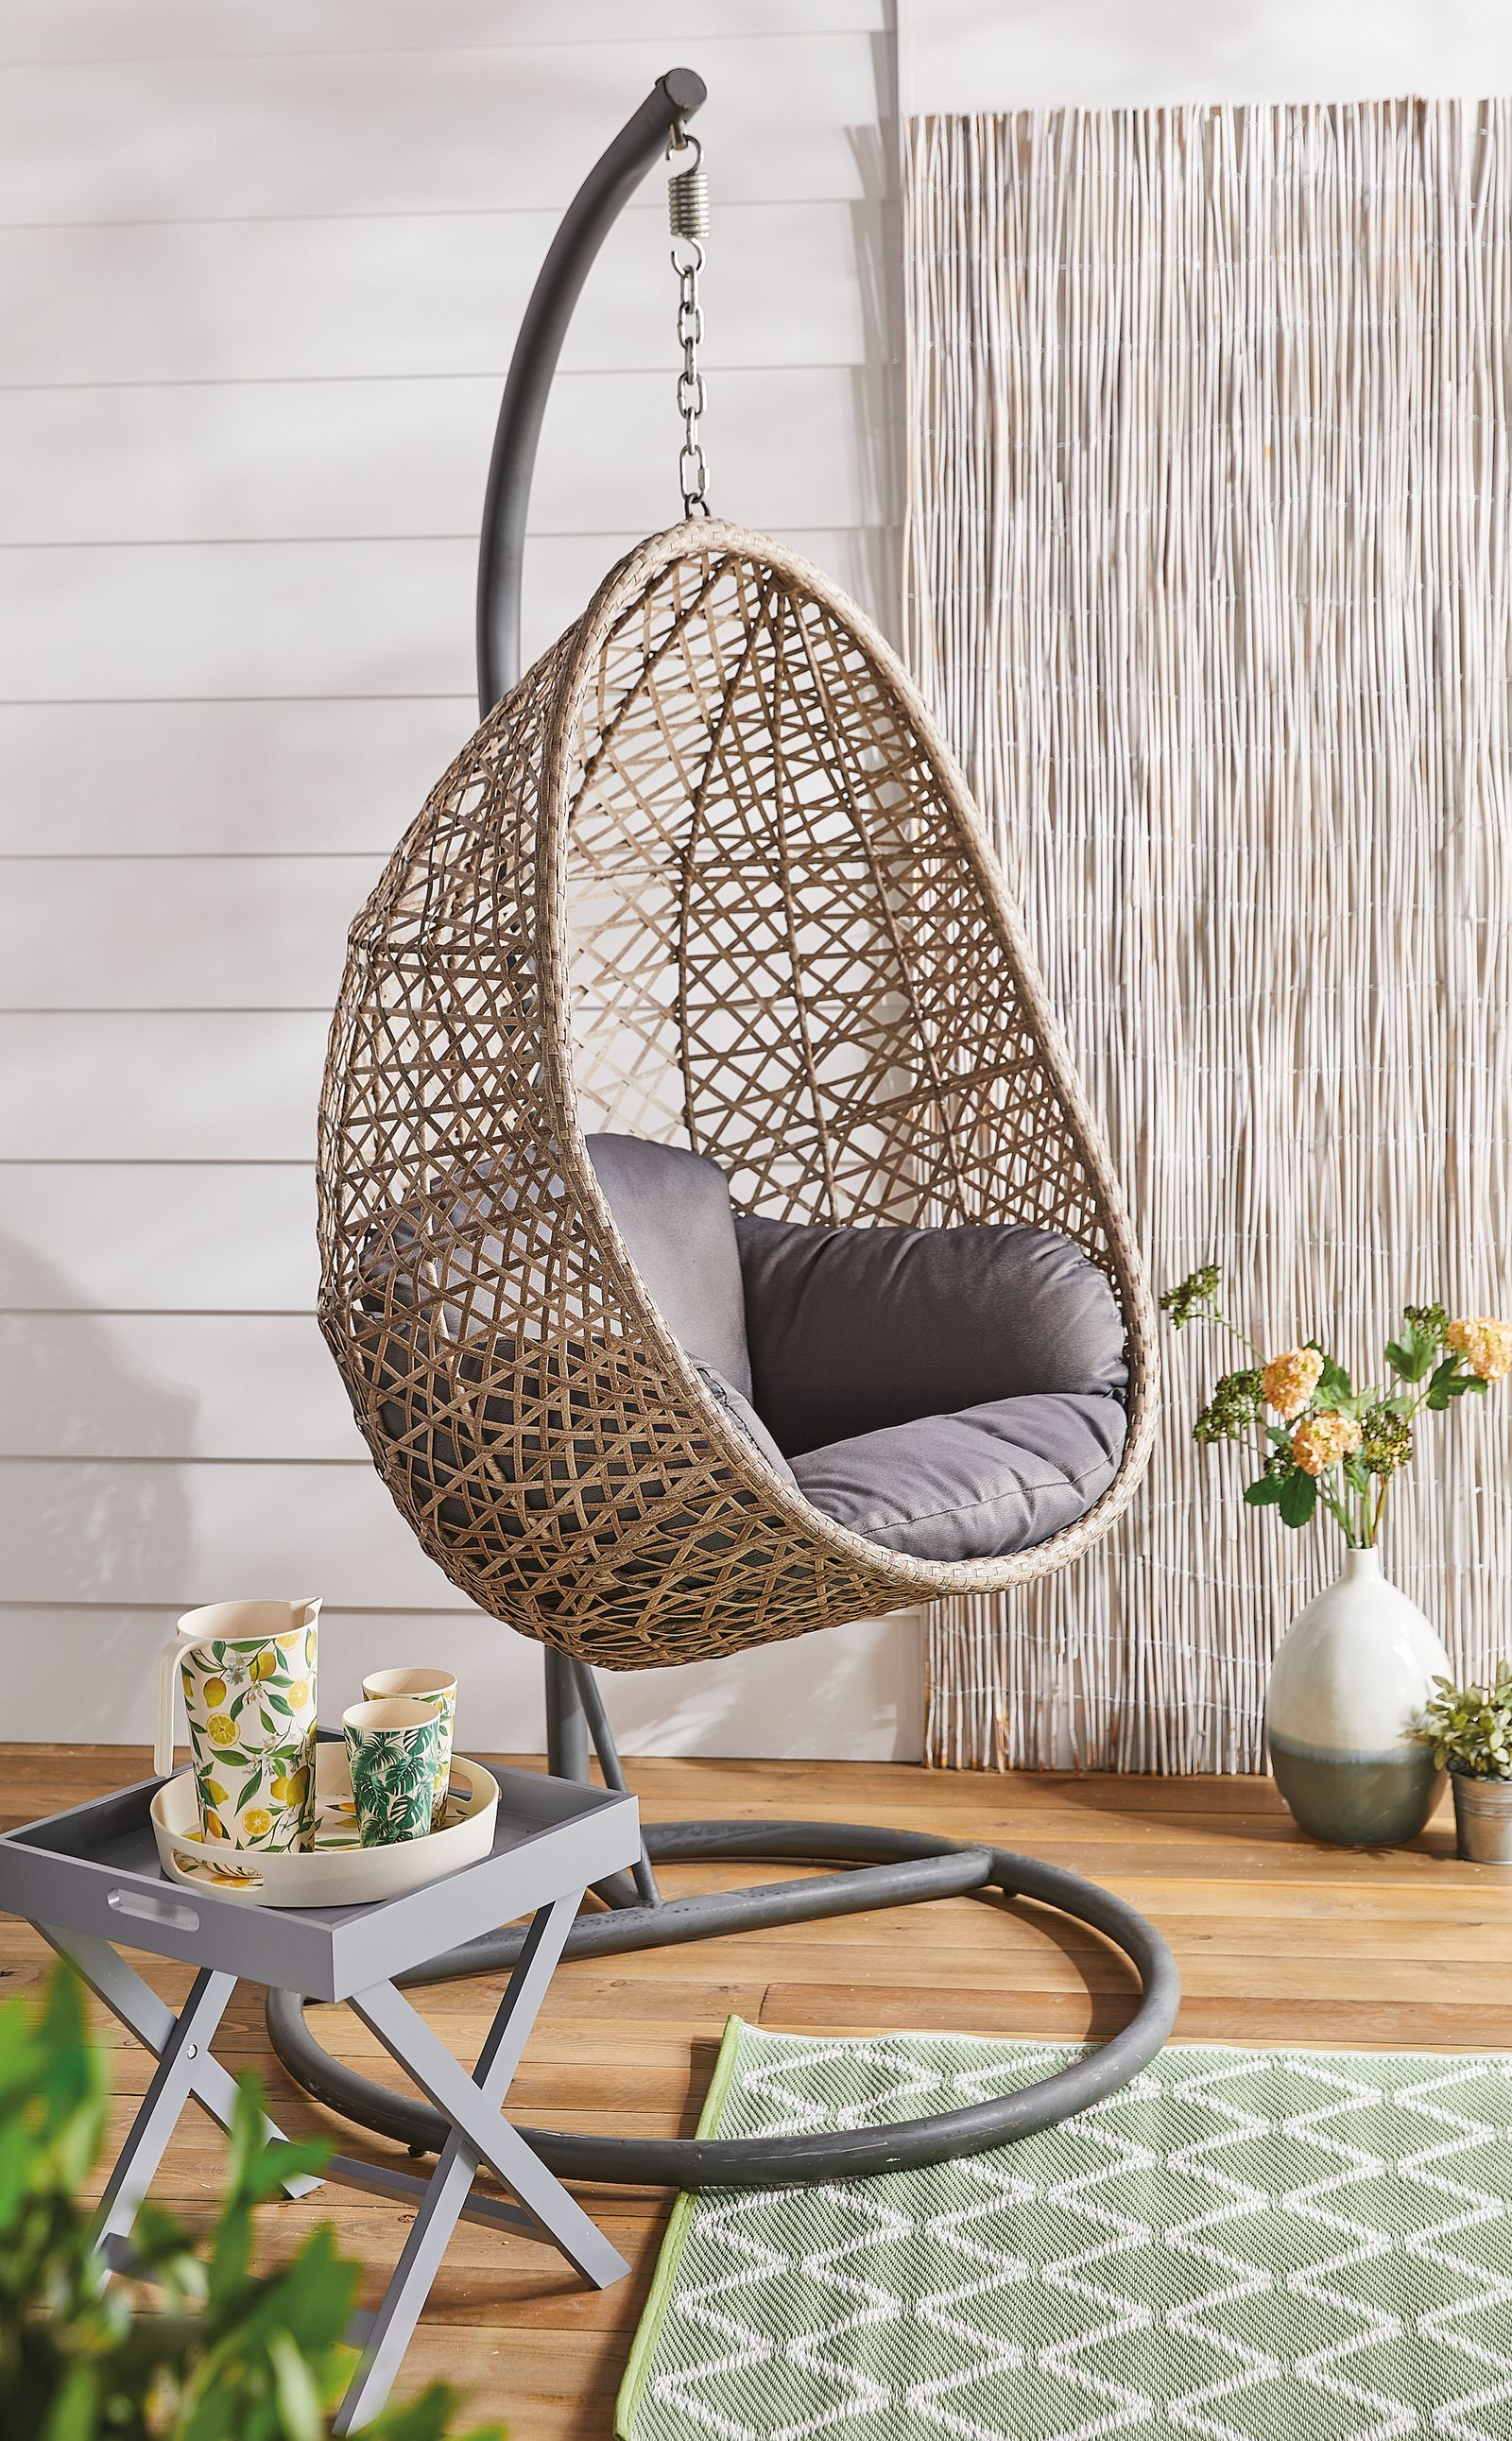 The New Aldi Garden Furniture Range Is Here And There S A Wooden Bench With A Built In Table For 70 Hanging Egg Chair Hanging Garden Chair Decor